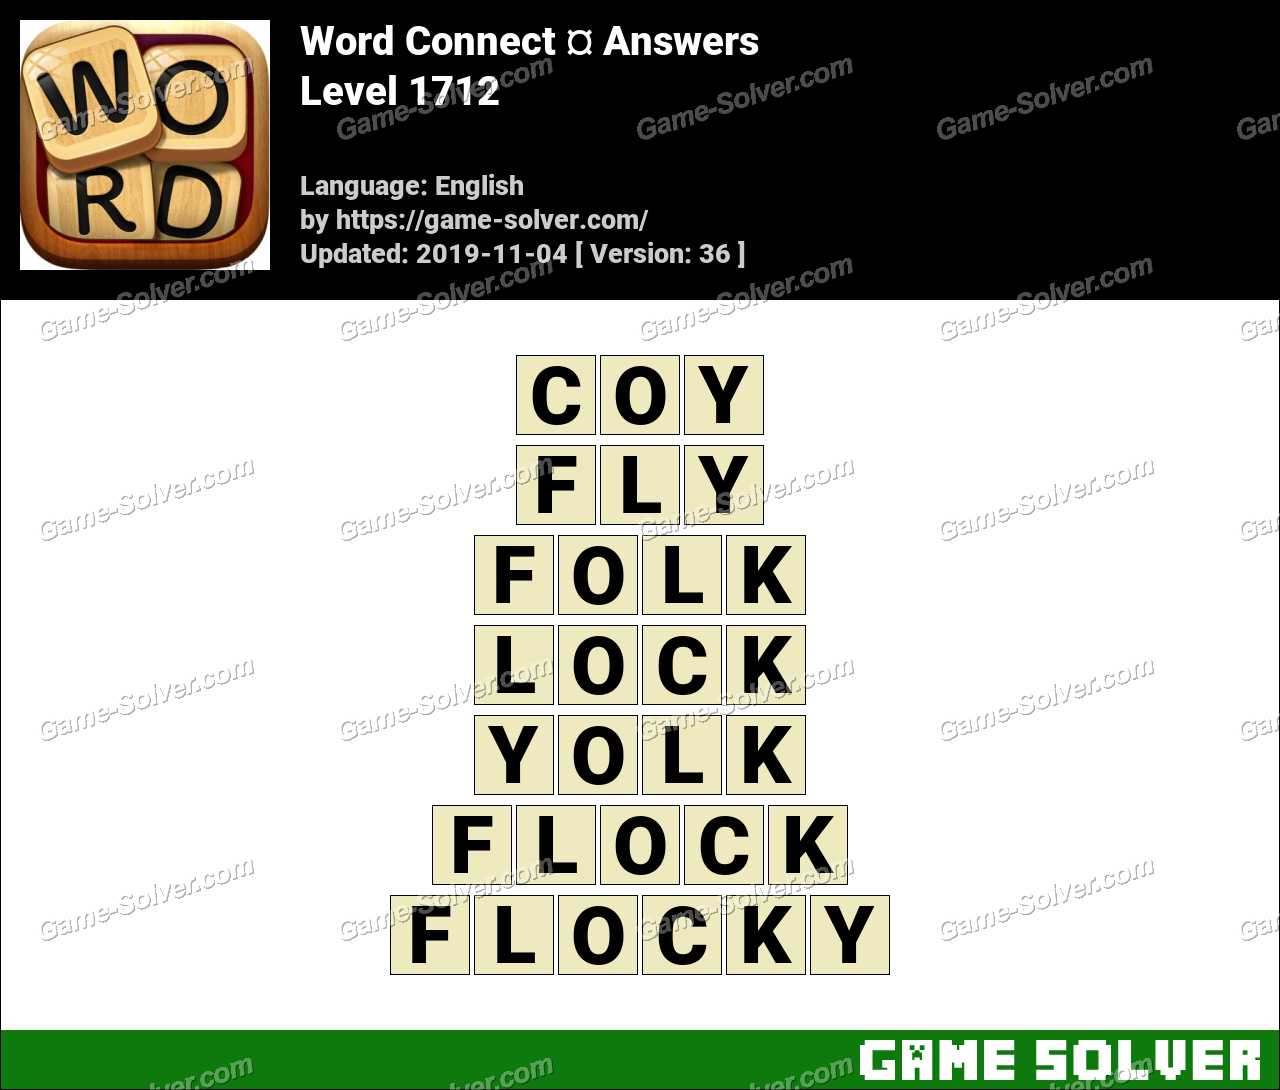 Word Connect Level 1712 Answers